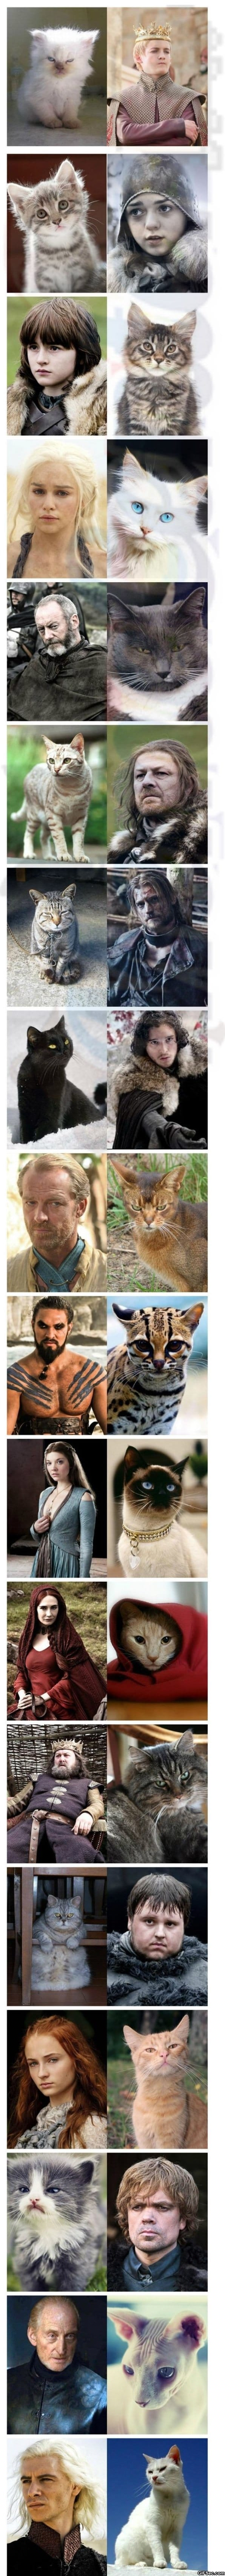 Game of thrones vs. Game Of Cats